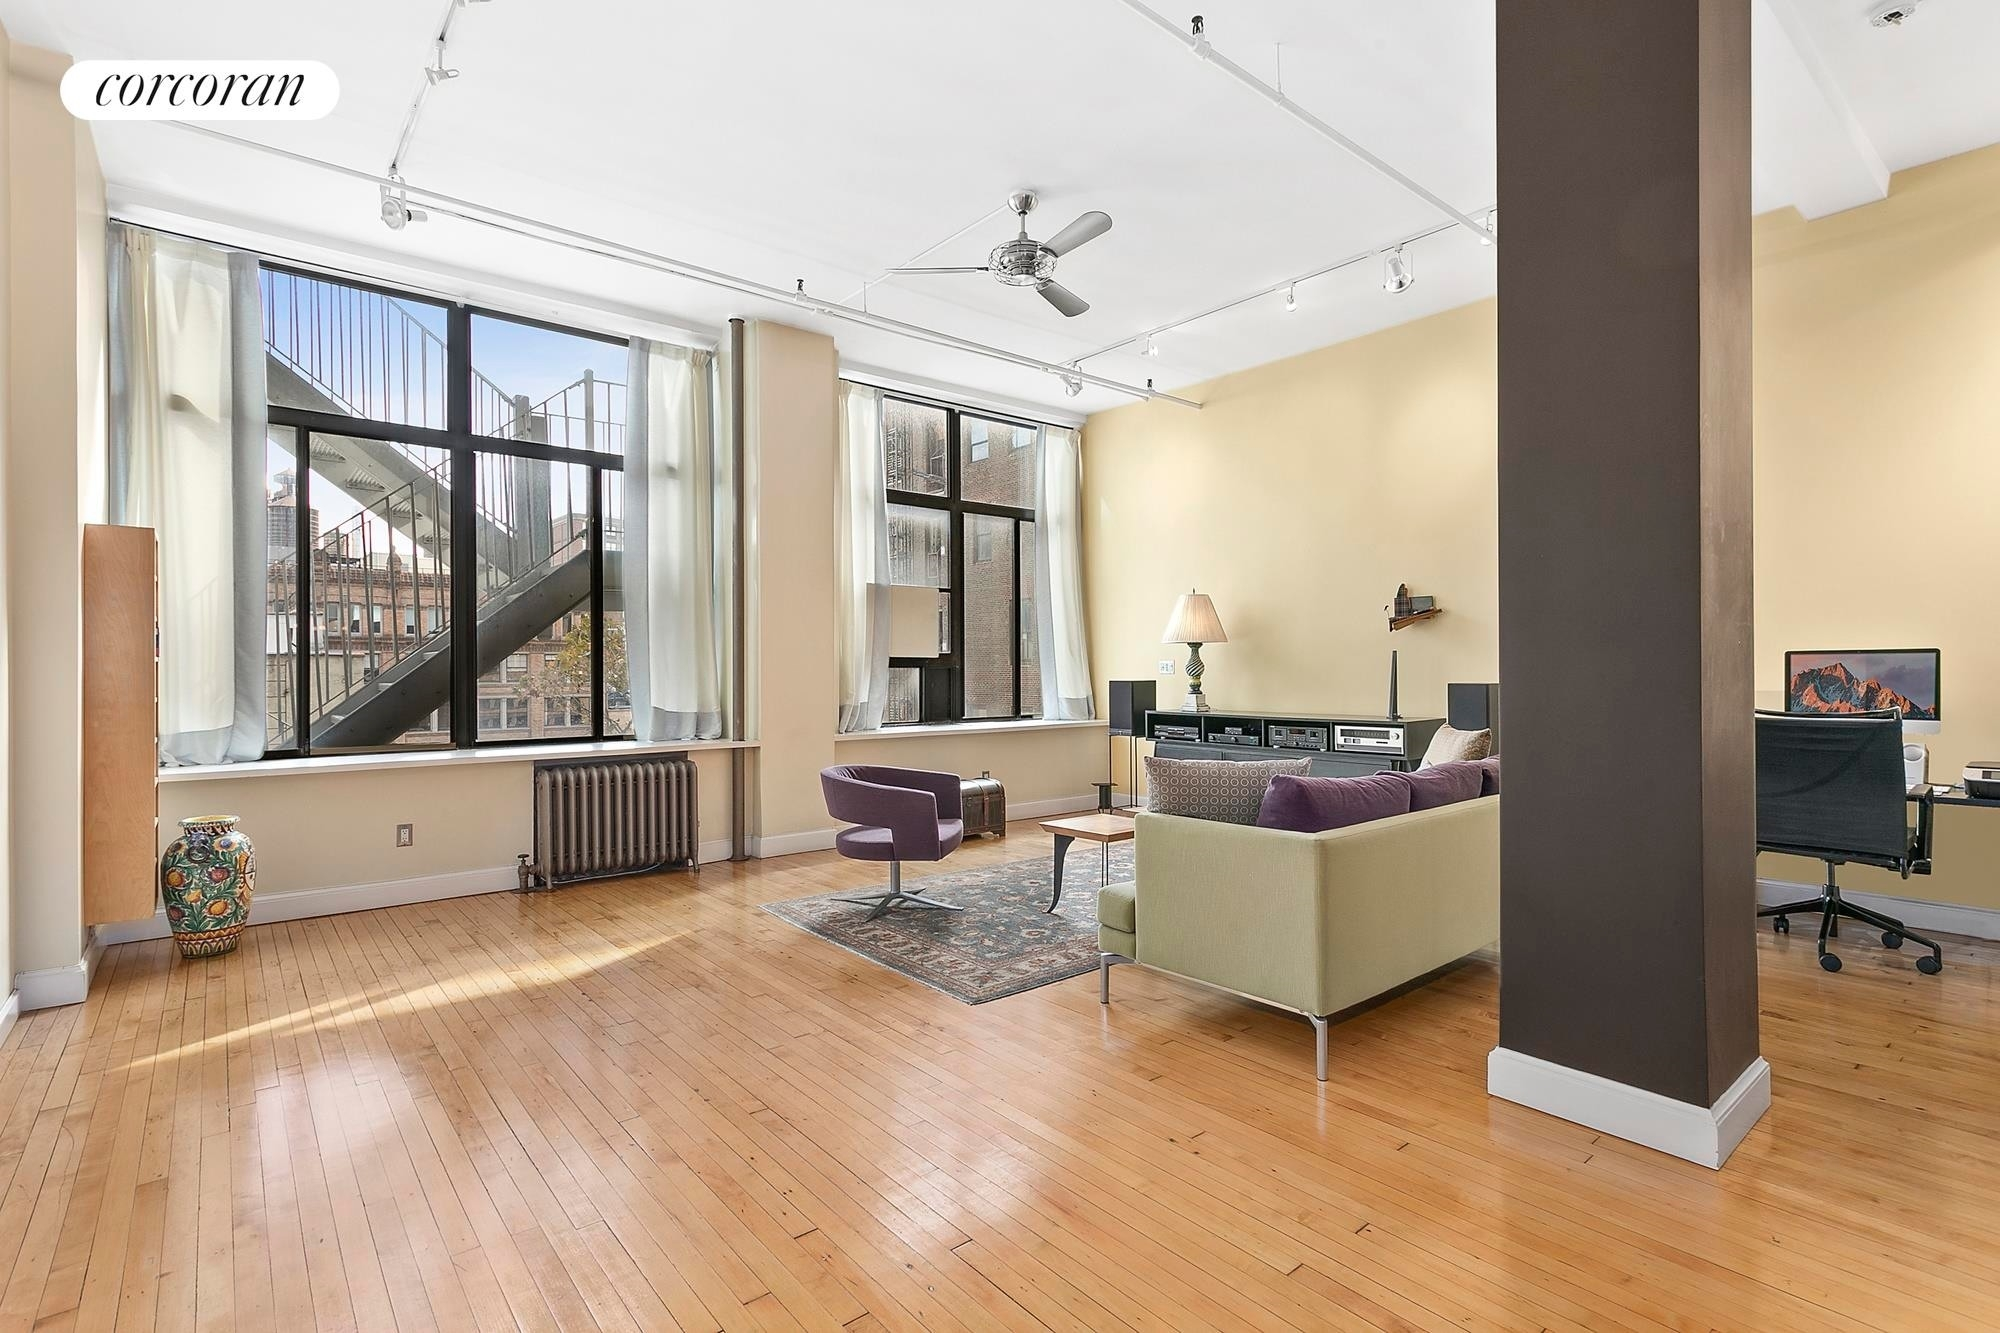 3. Co-op Properties for Sale at 82-83 TENANTS CORP, 718 Broadway, 5C NoHo, New York, NY 10003